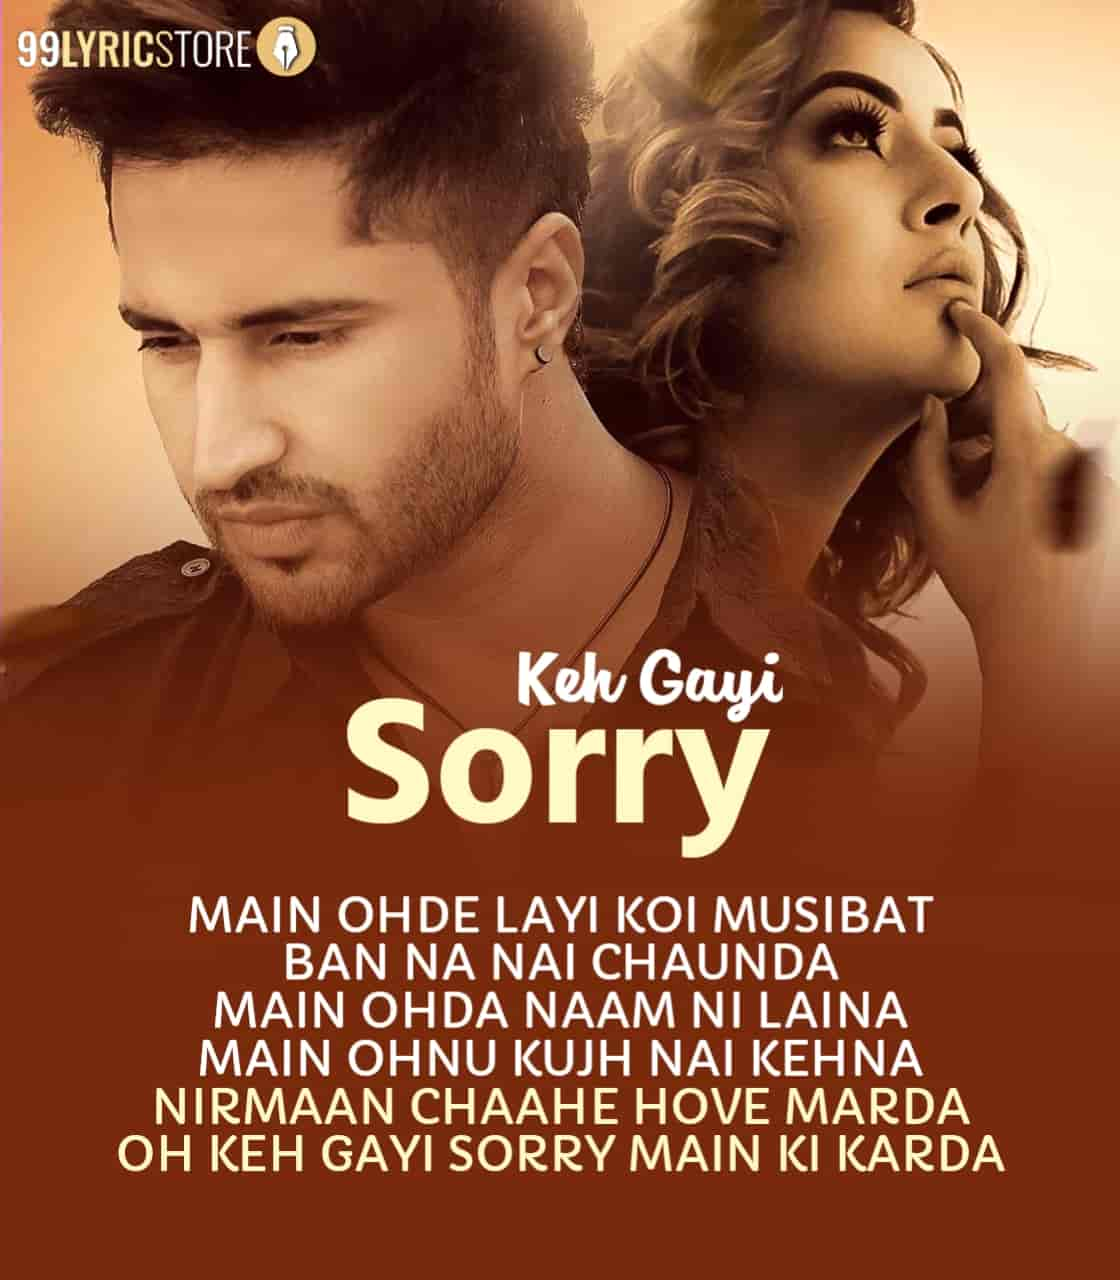 Keh Gayi Sorry Song Images By Jassie Gill